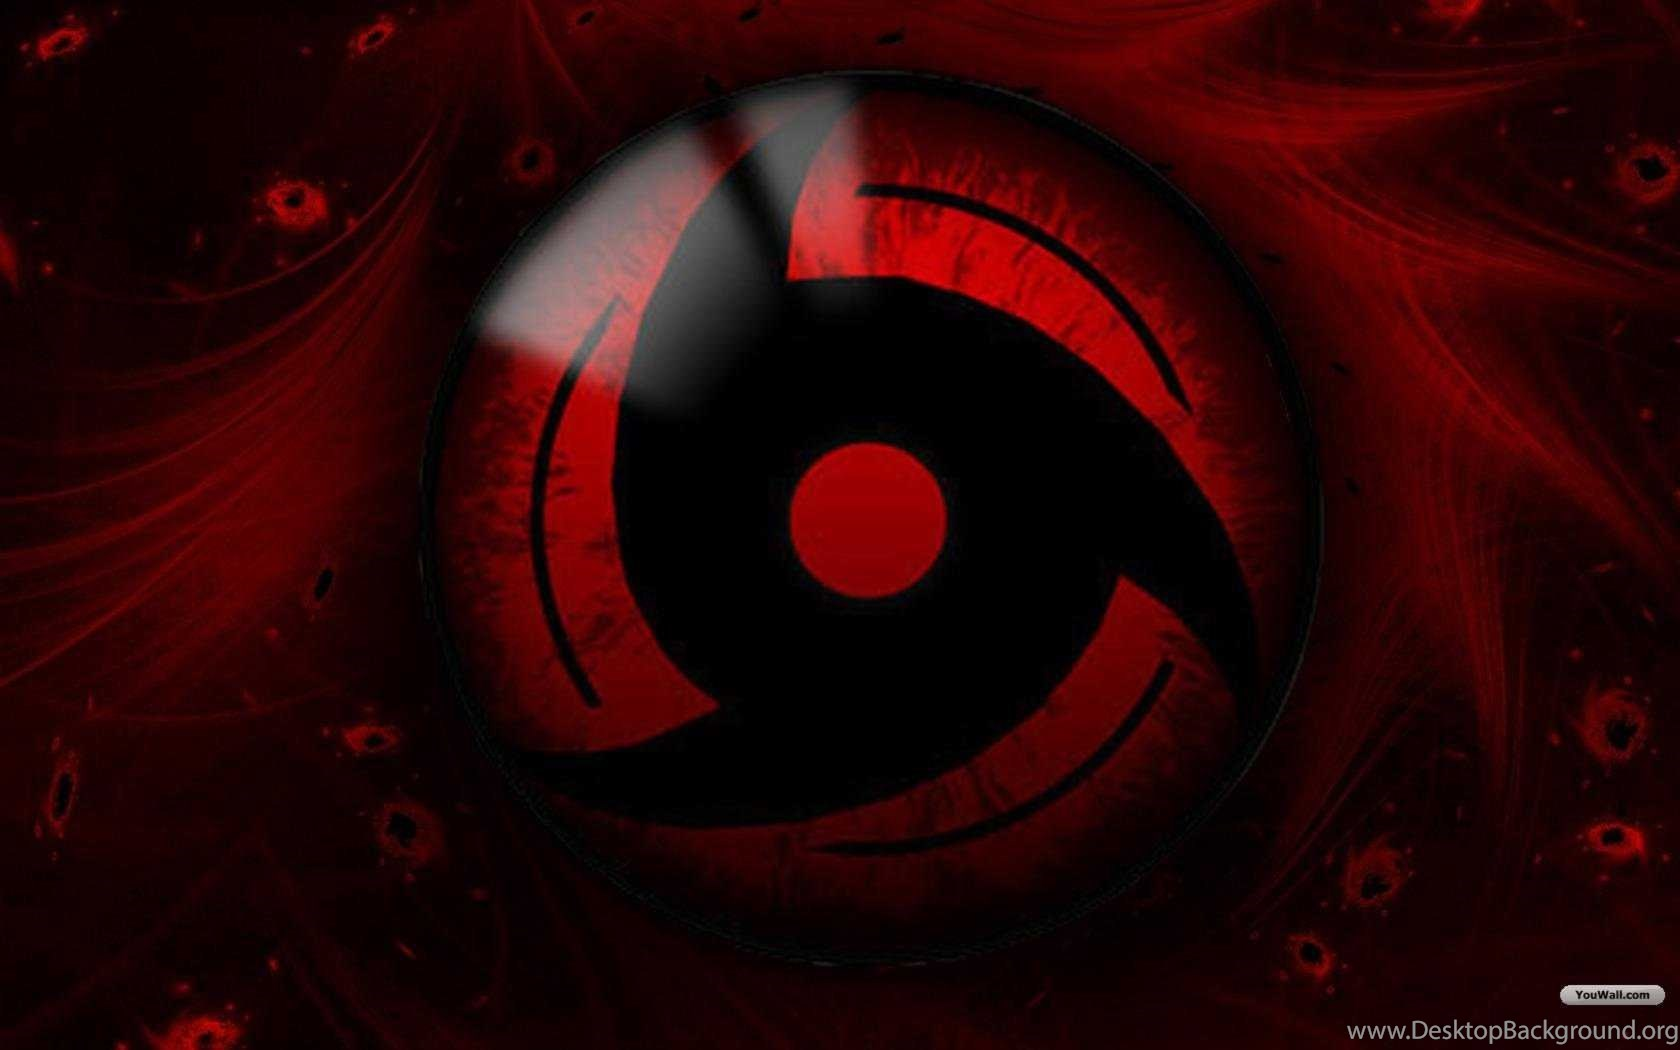 Hd quality cool red and black desktop wallpapers hd 4 - Cool red and black wallpapers ...